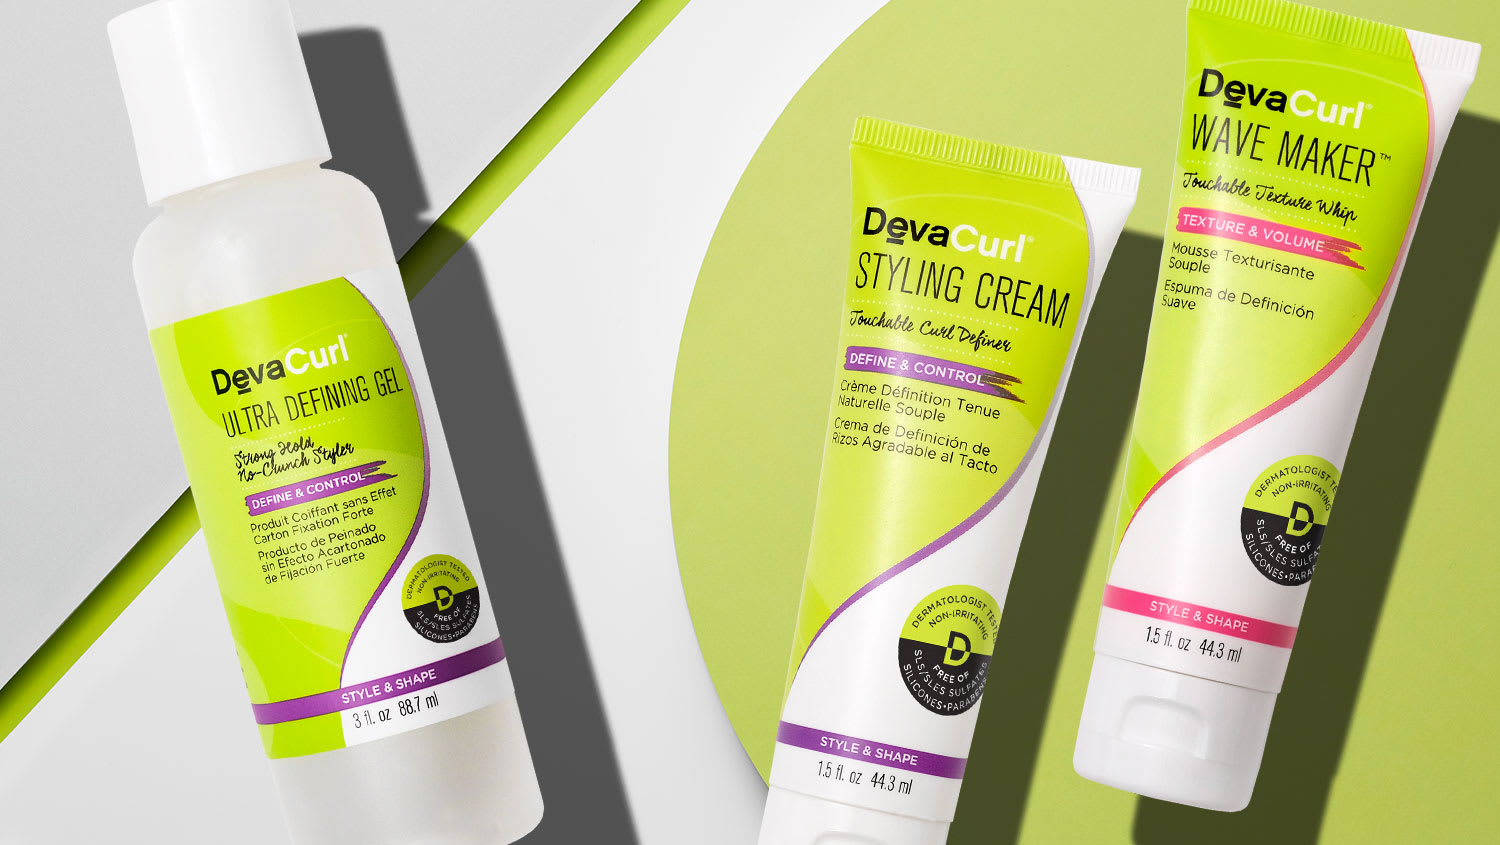 Ultra Defining Gel 3oz bottle and Styling Cream and Wave Maker mini tubes